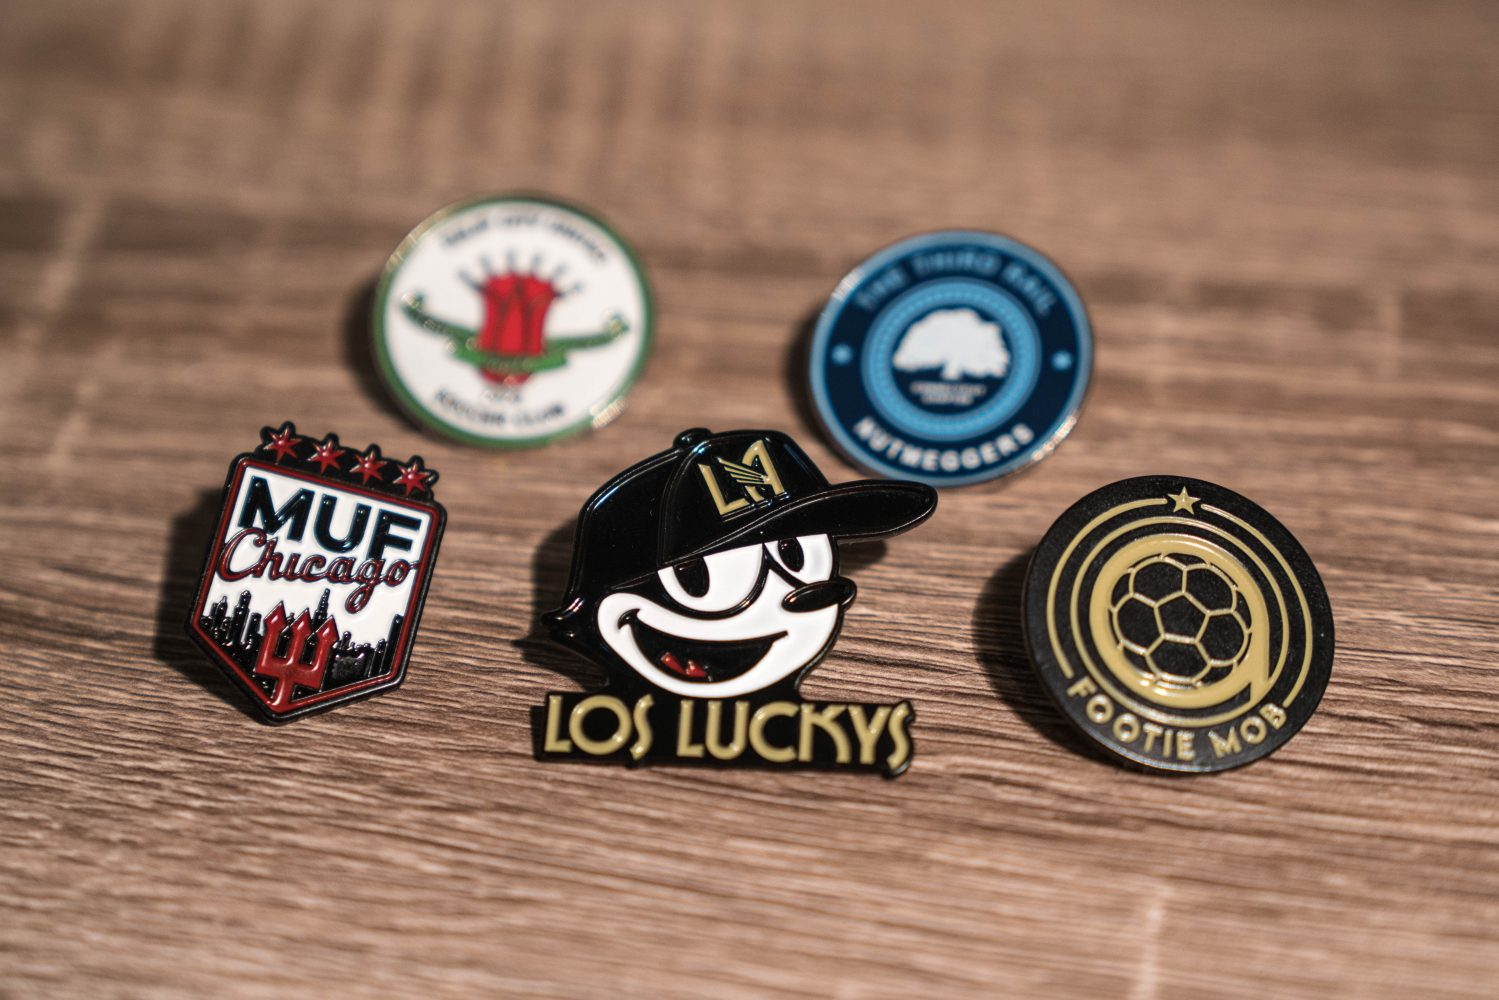 flat lay of five enamel pins on wooden table - Los Luckys, Footie Mob, Third Rail NYC, MUF Chicago